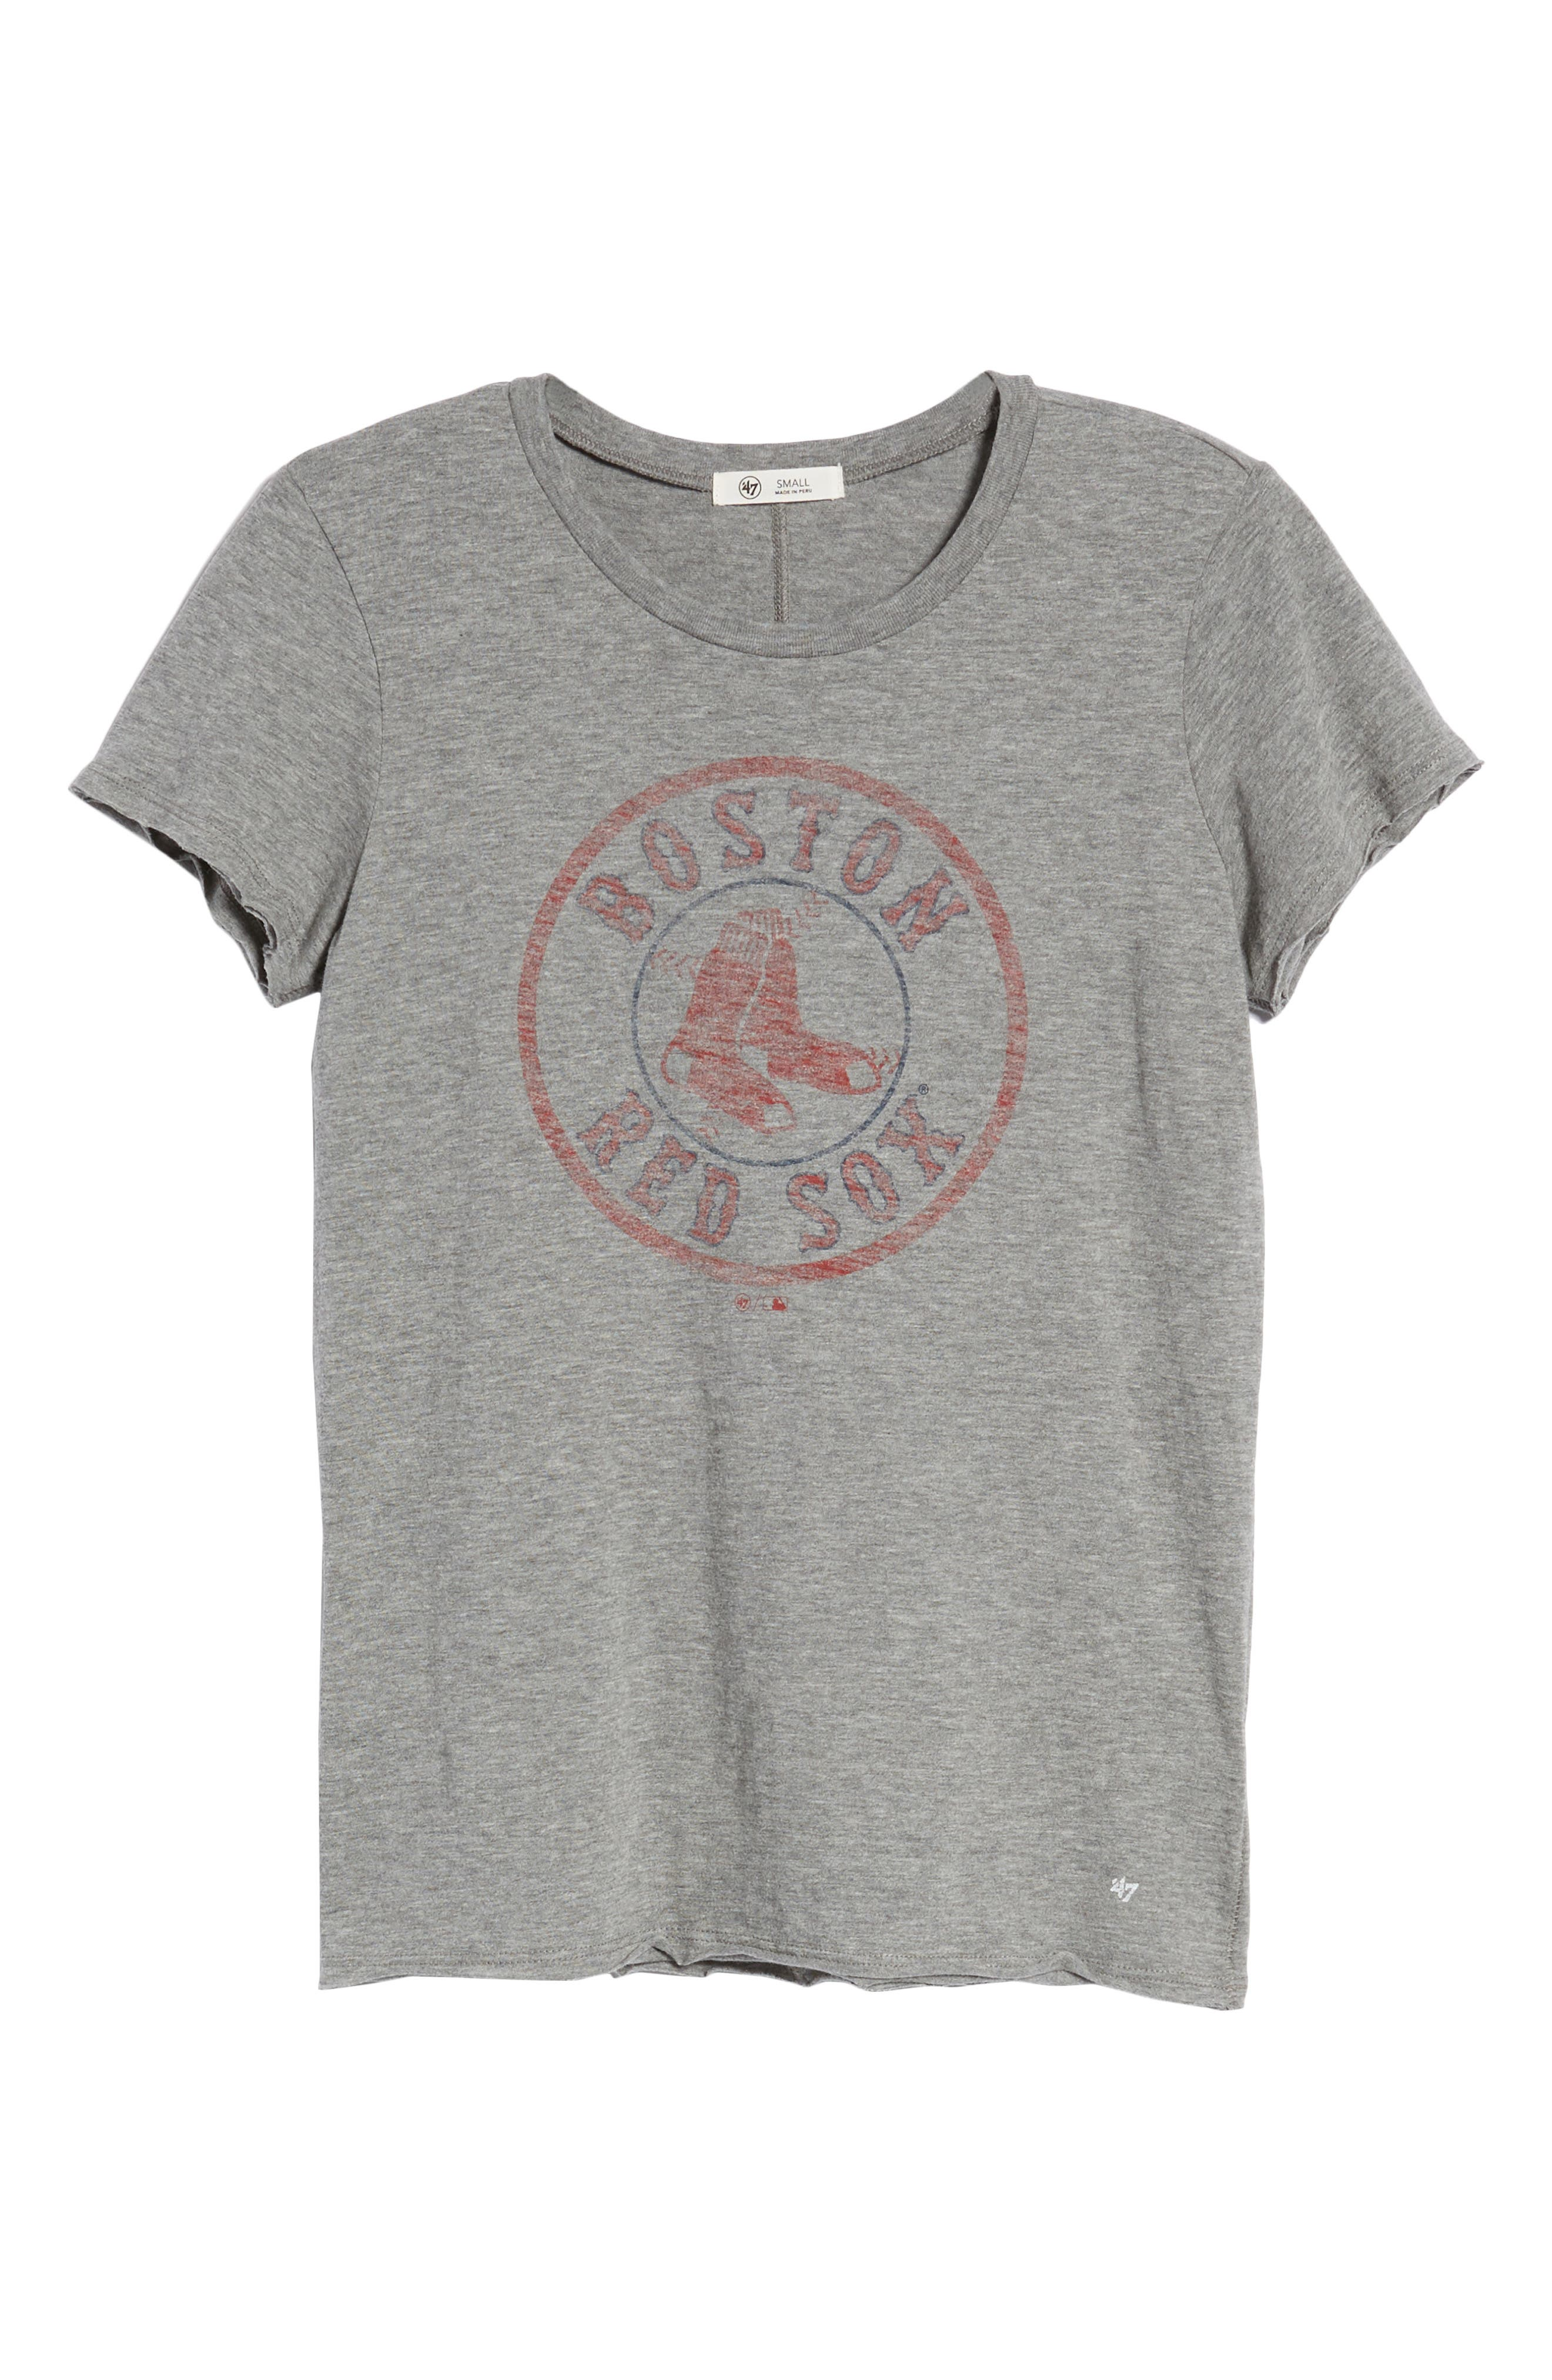 Boston Red Sox Fader Letter Tee,                             Alternate thumbnail 7, color,                             021